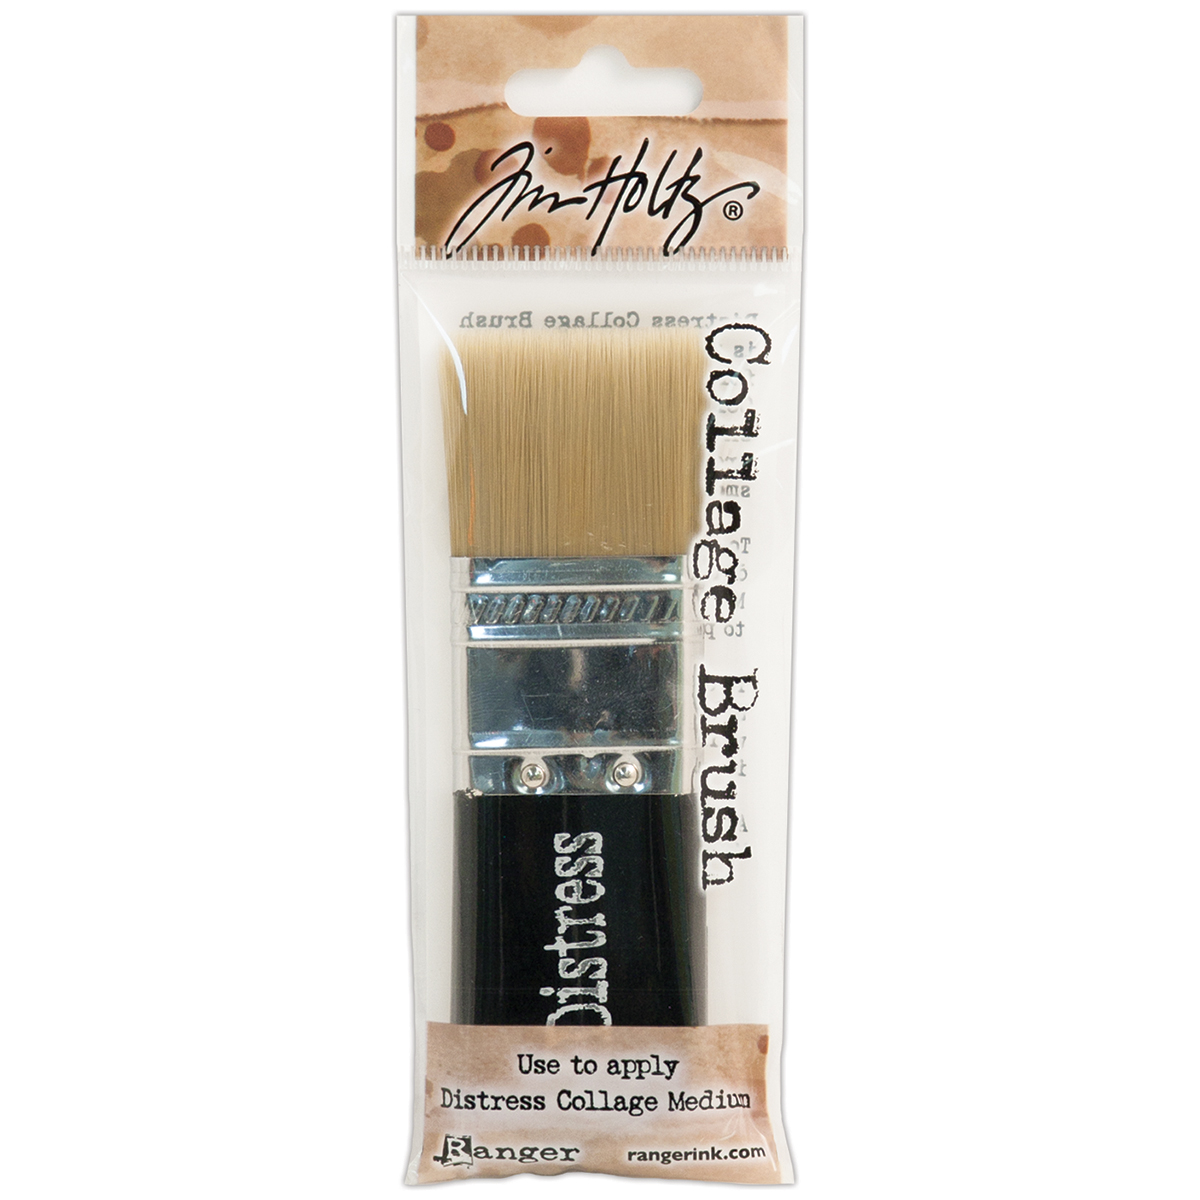 Tim Holtz Distress Collage Brush-1-1/4